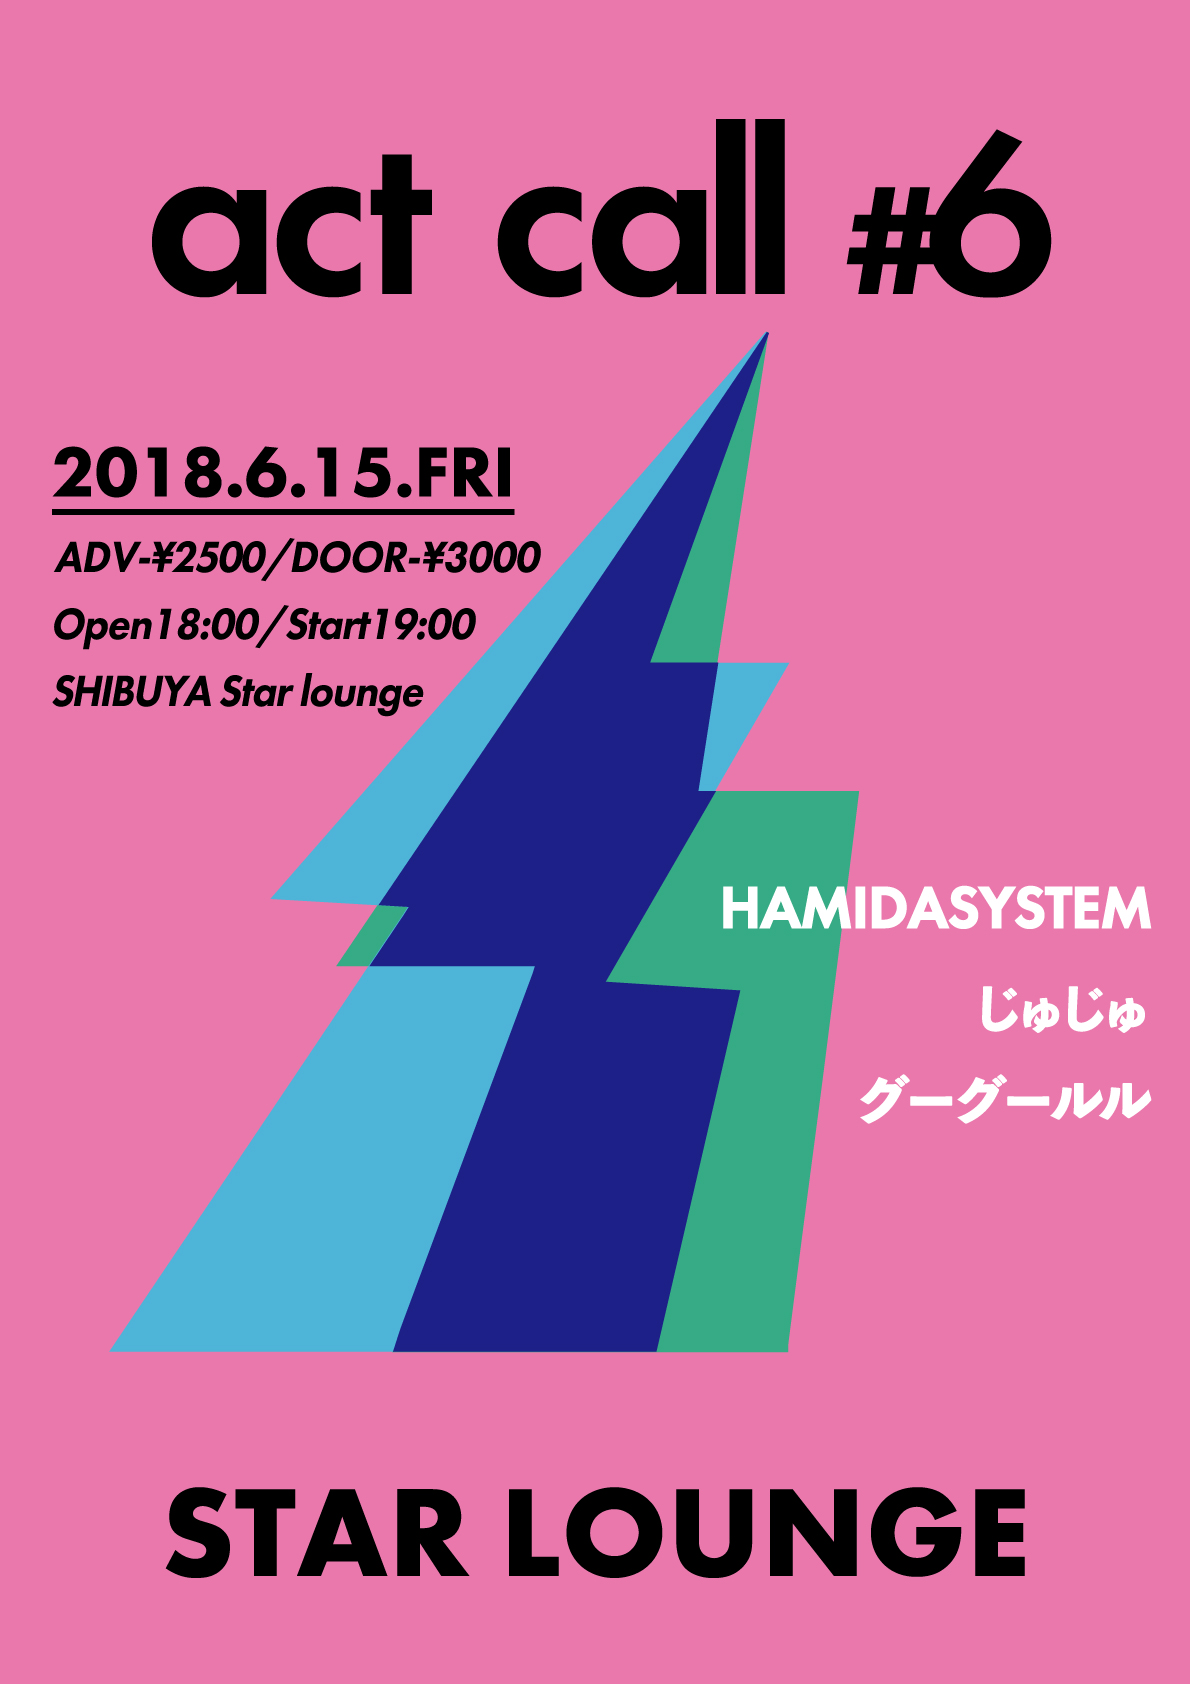 HAMIDASYSTEM presents「act call #6」